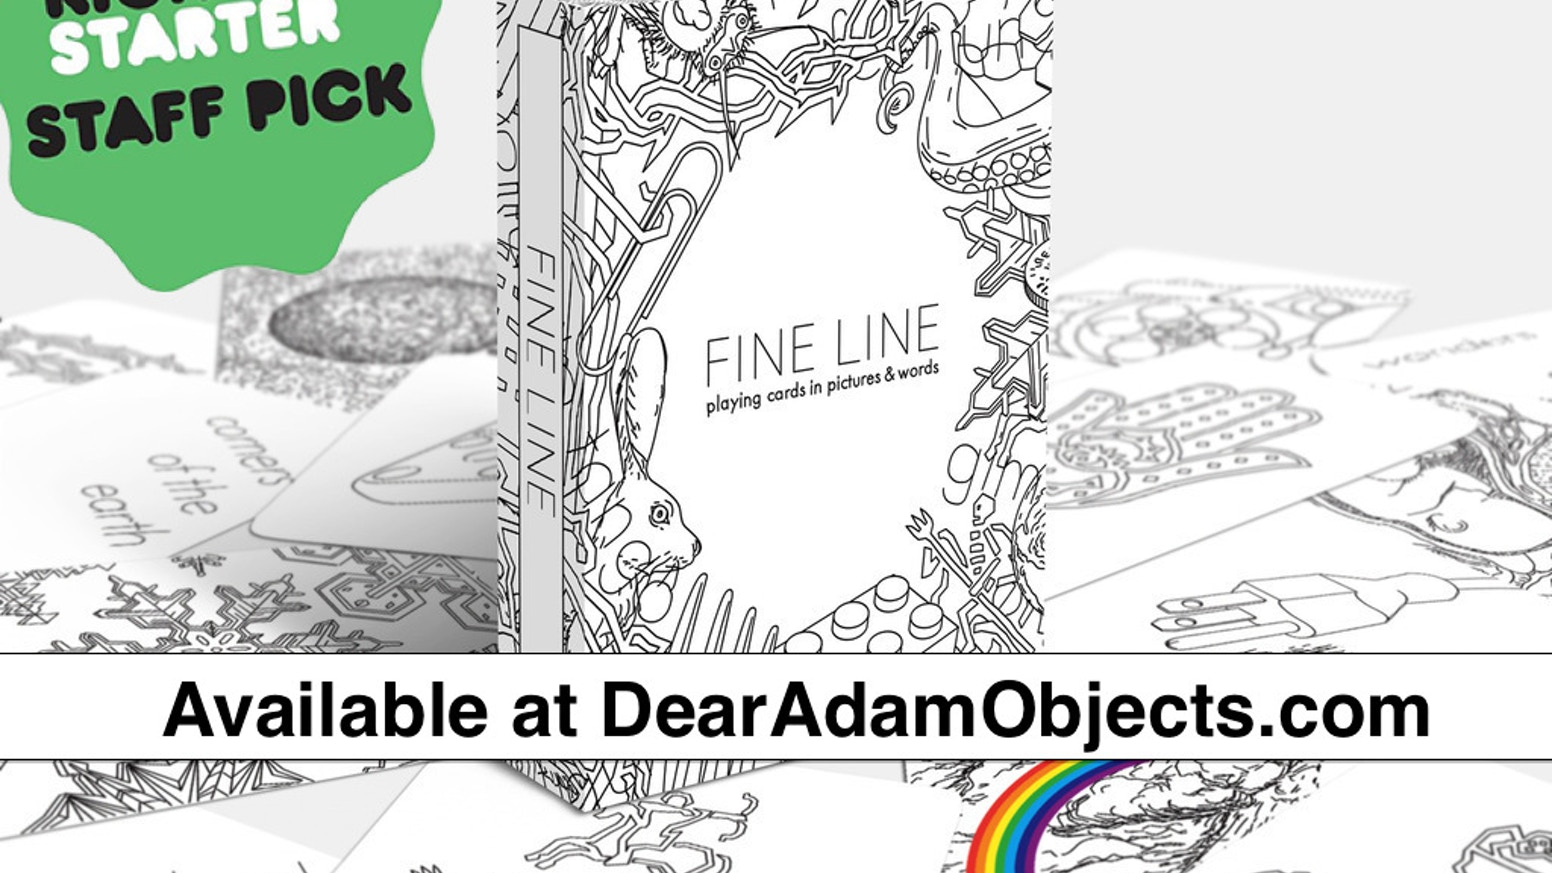 FINE LINE: Playing Cards in Pictures & Words by Adam Farbiarz & Adam